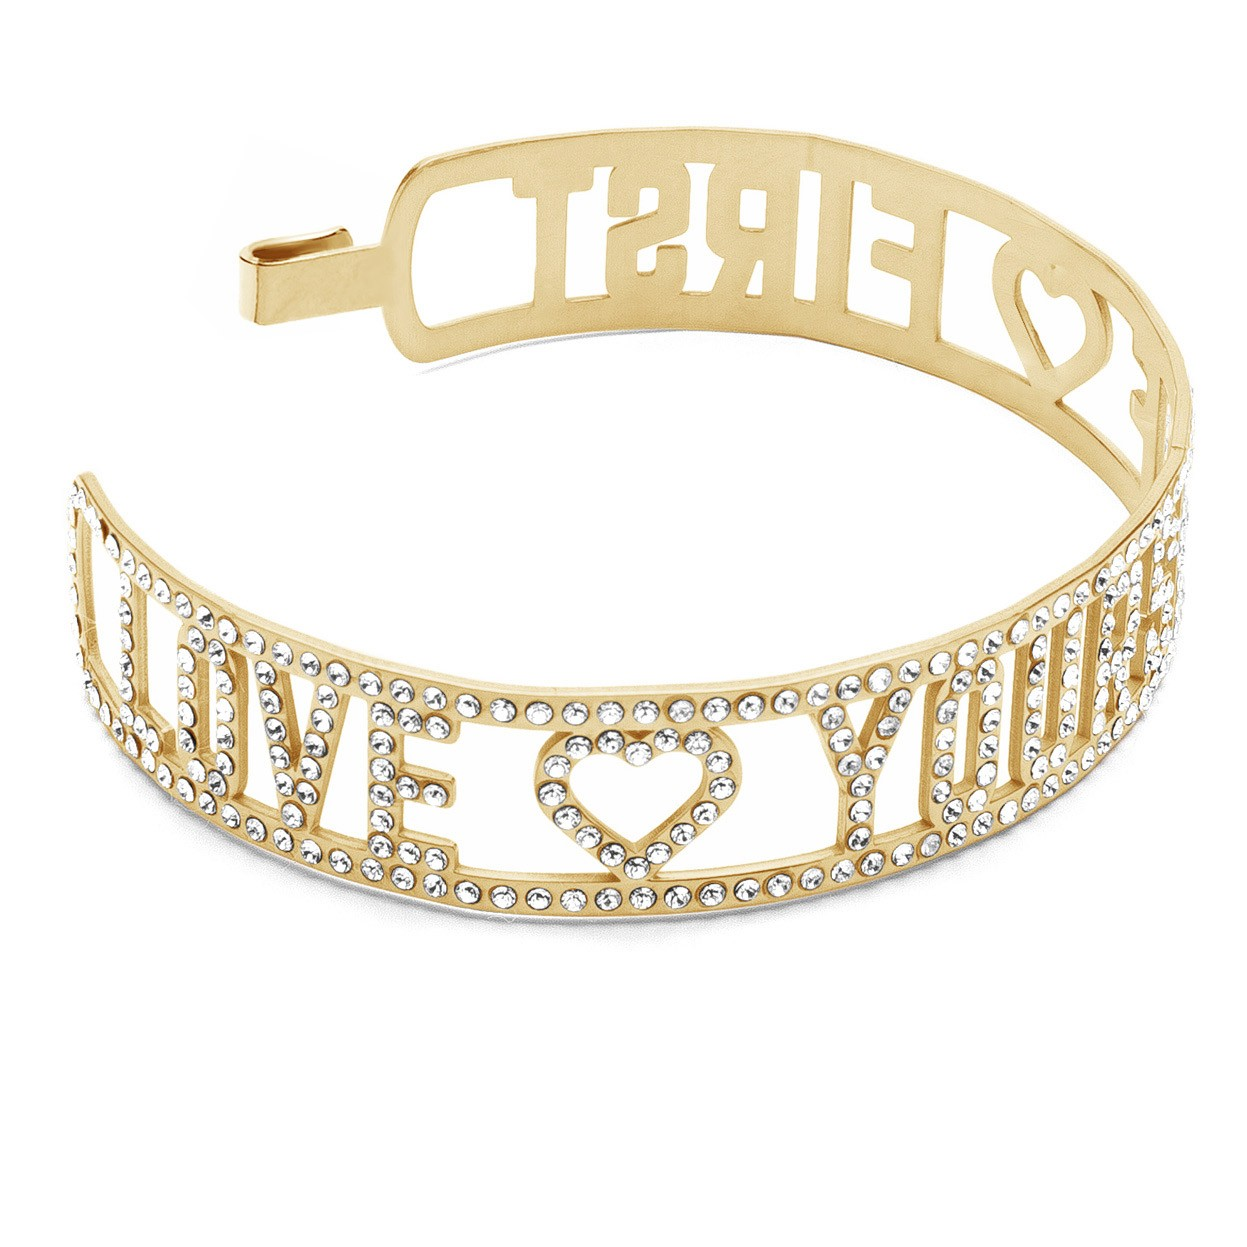 LOVE YOURSELF FIRST BANGLE BRACELET WITH SWAROVSKI CRYSTALS, STERLING SILVER 925